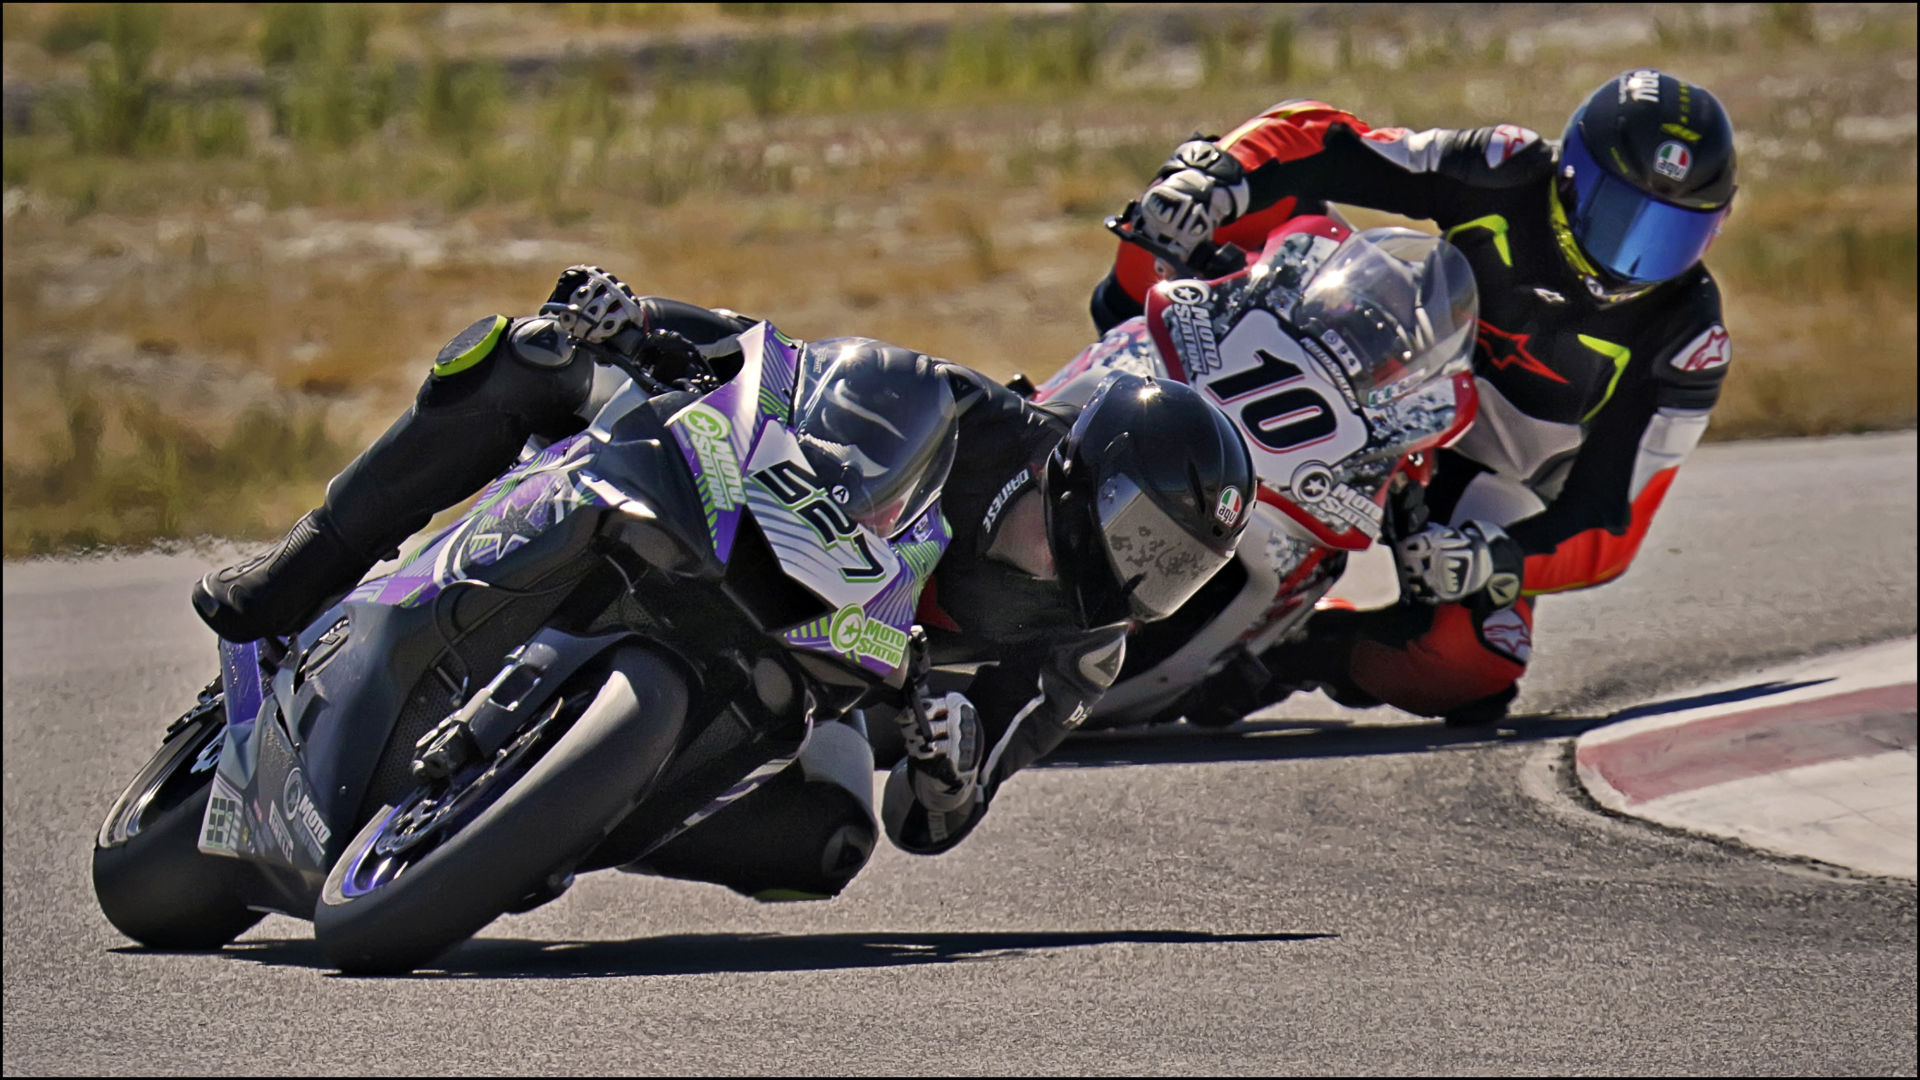 Jerry Hicks (527) holds off Eric Jones (10) during the UtahSBA King of the Mountain GTO finale at Utah Motorsports Campus. Photo by Steve Midgley, courtesy UtahSBA.